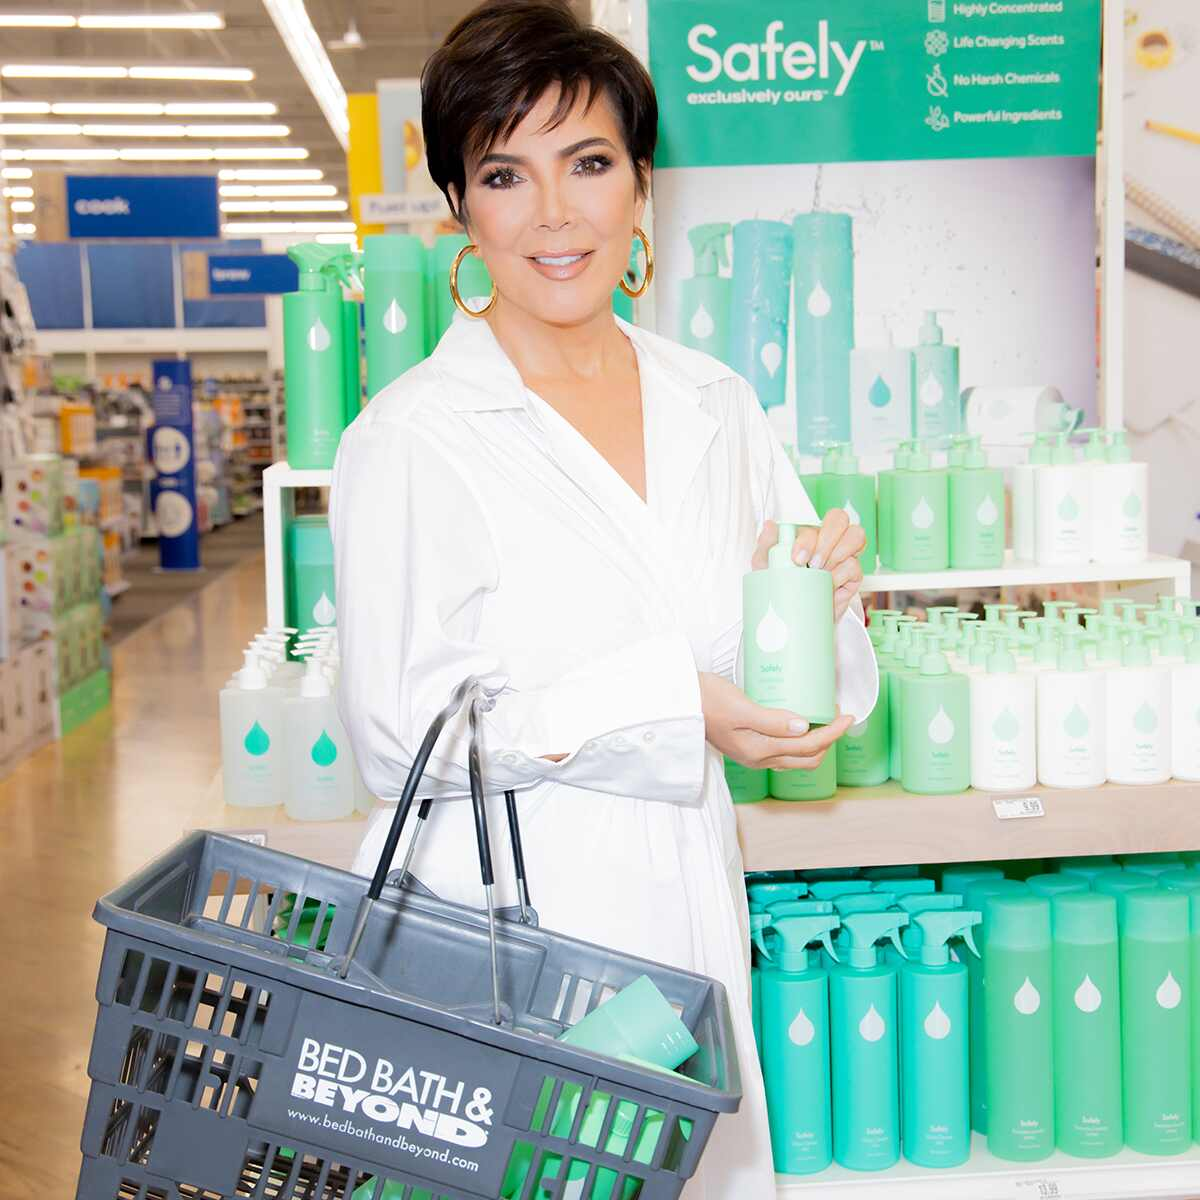 E-comm: Safely x Bed Bath and Beyond